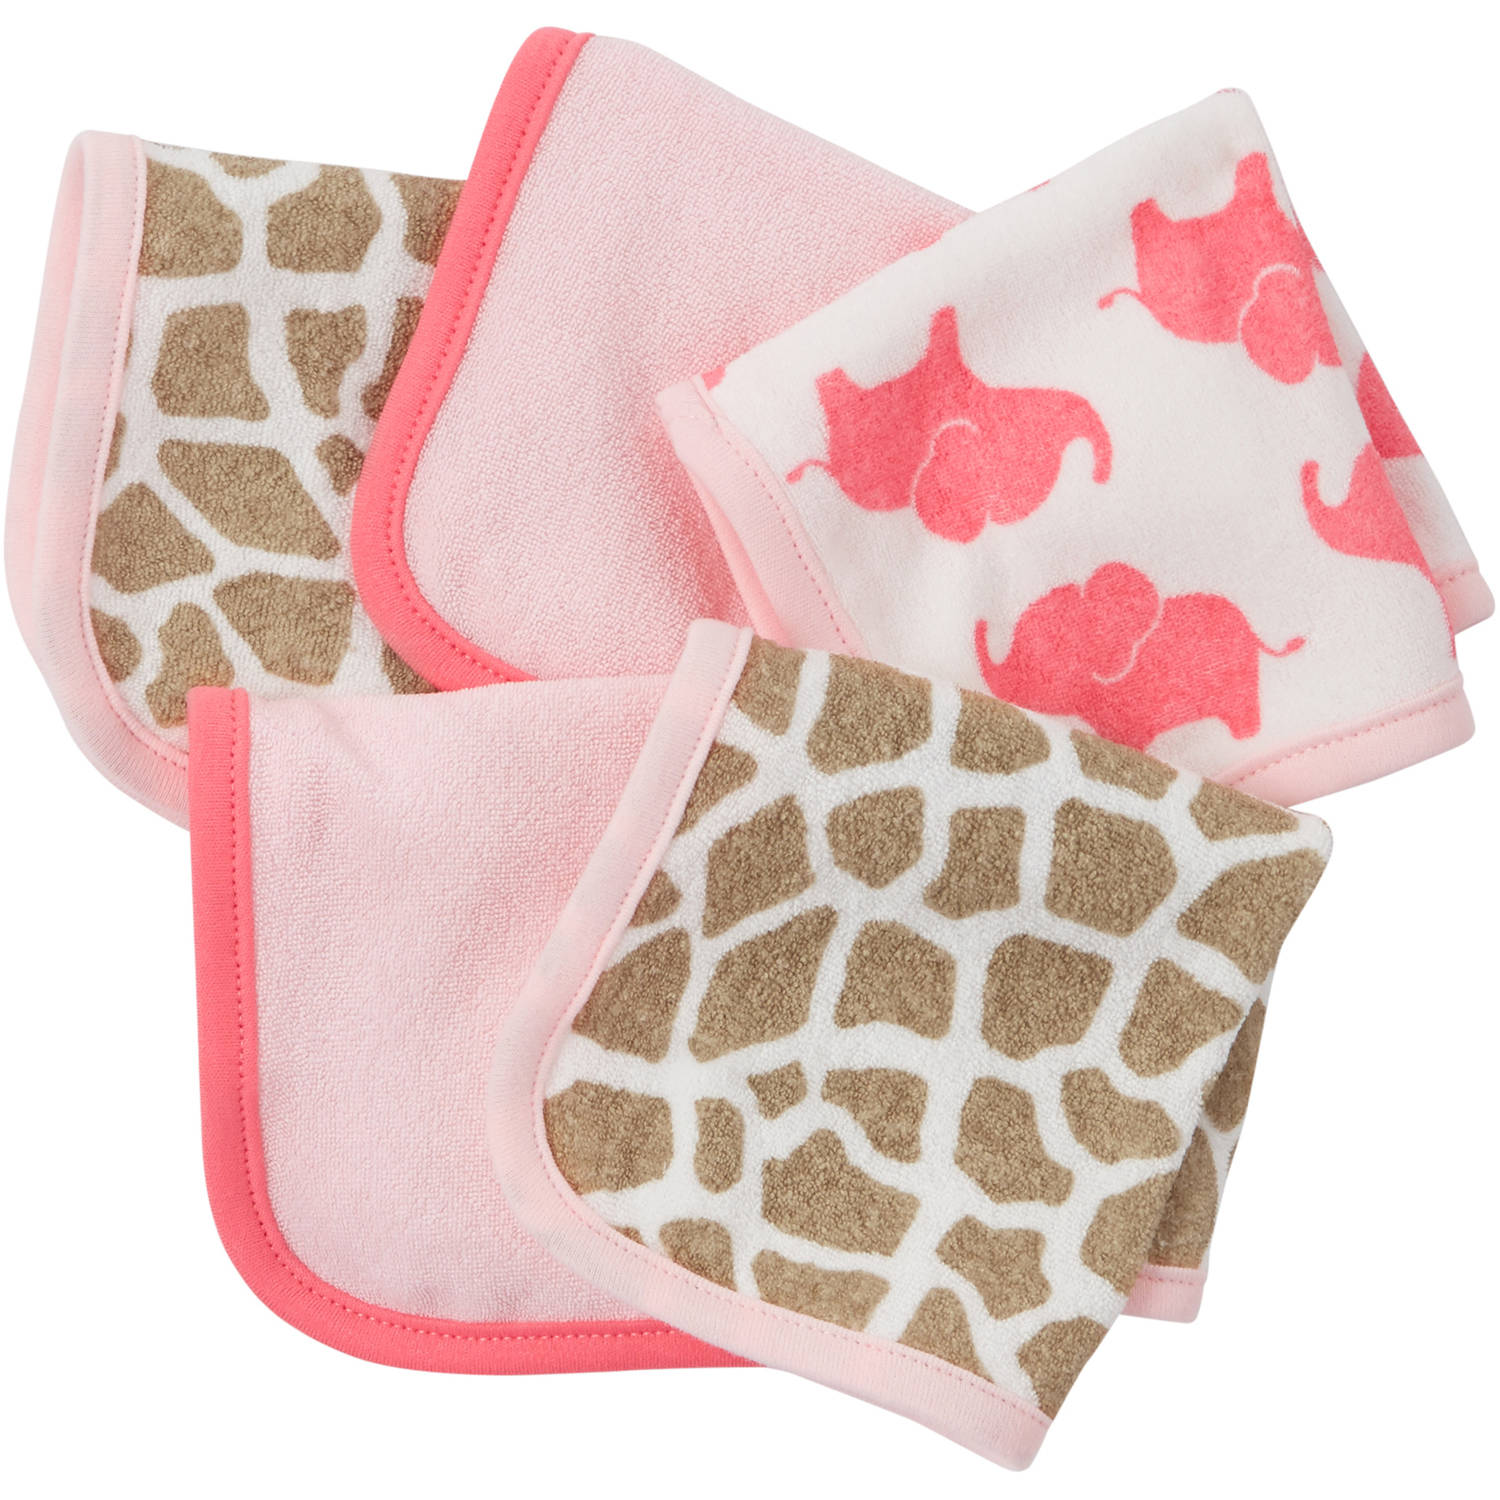 Child of Mine by Carter's Newborn Baby Girl Washcloths, 5 Pack